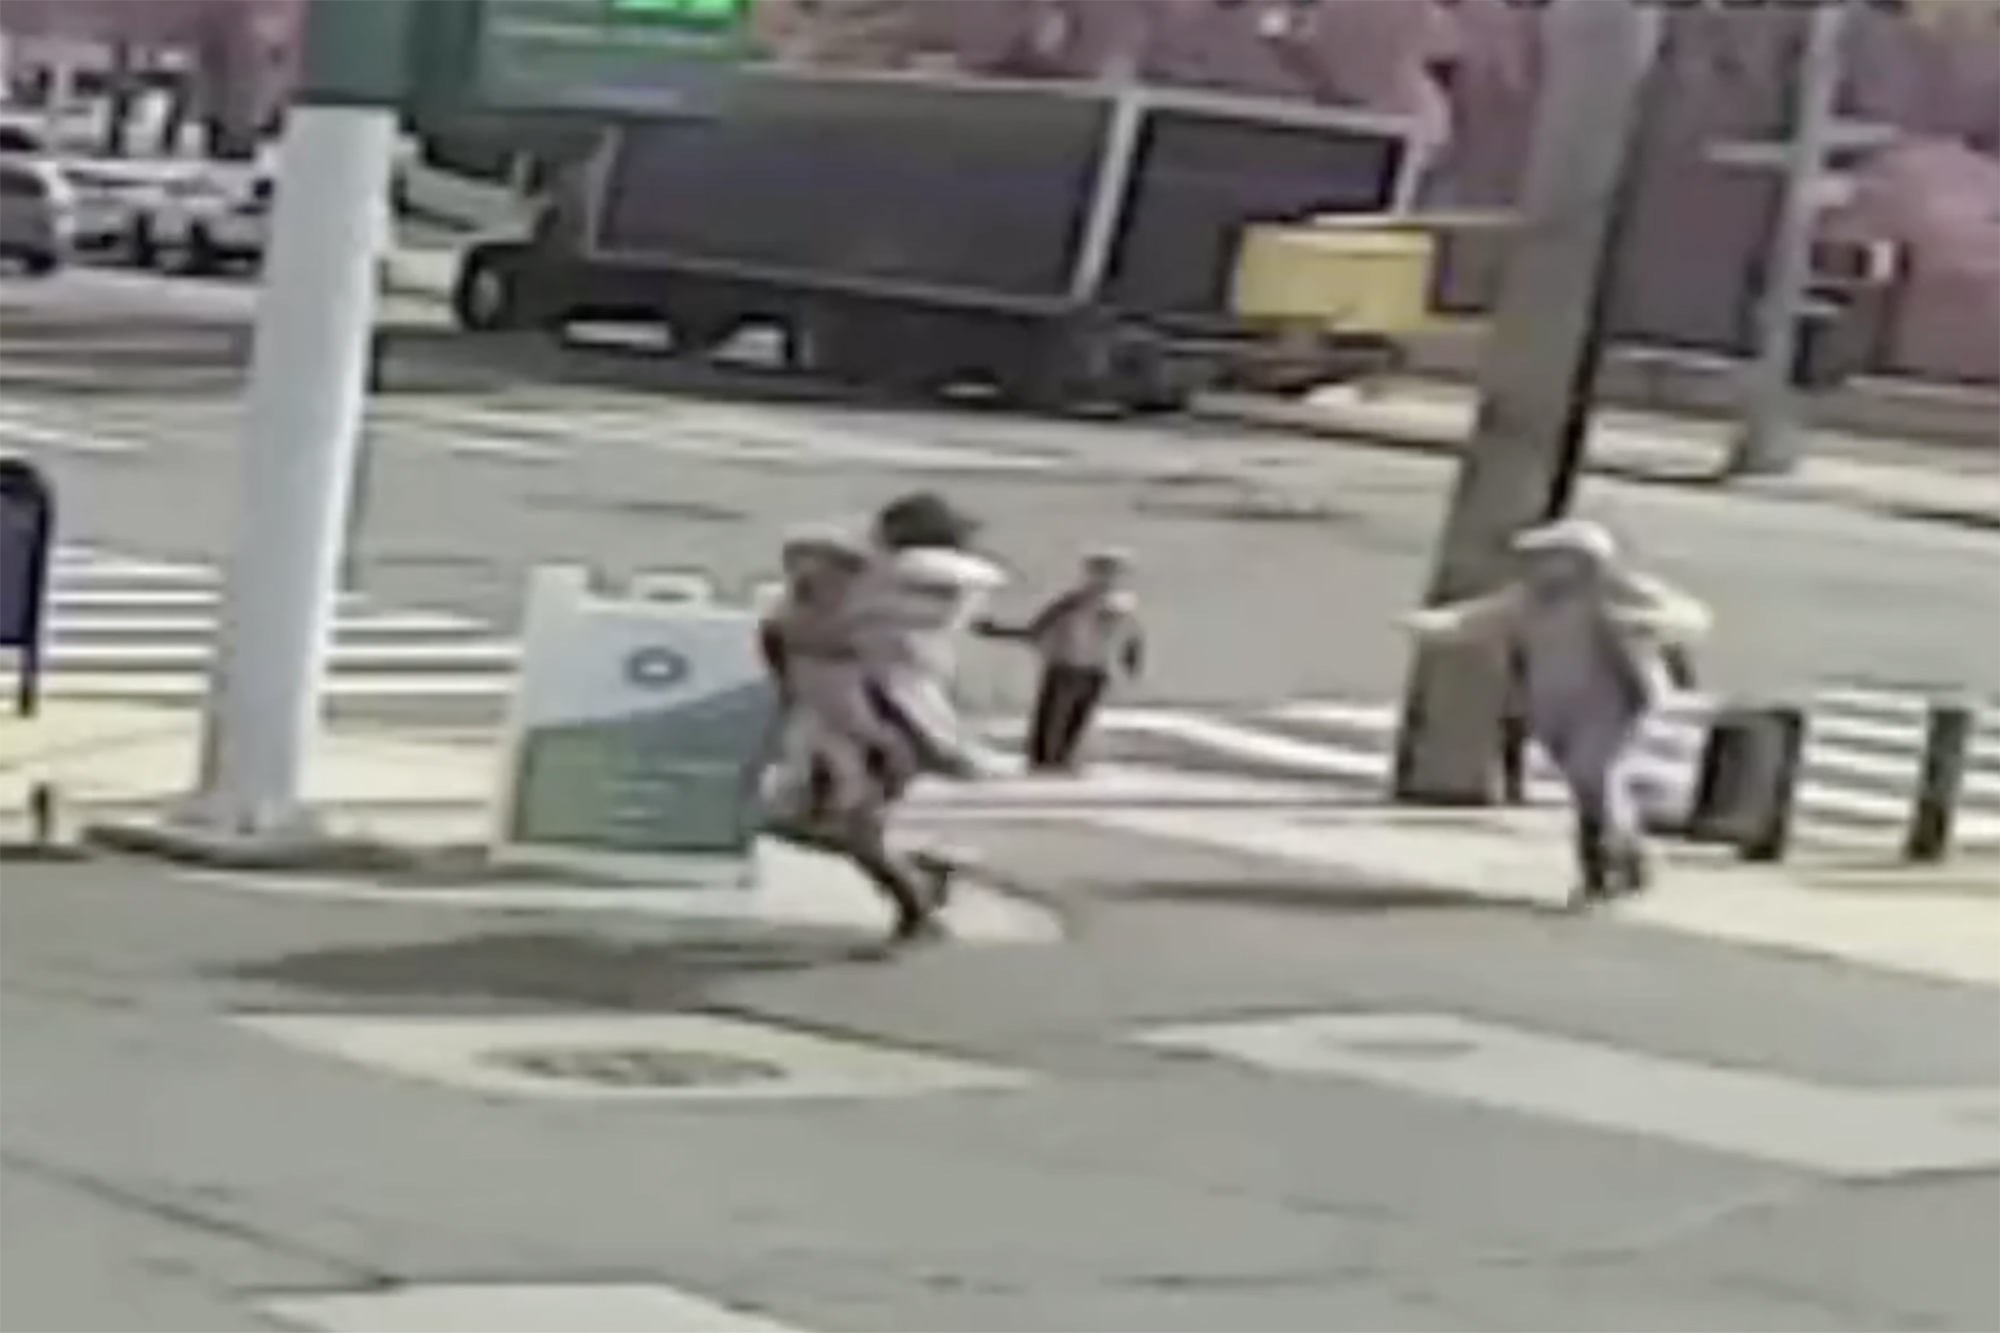 Surveillance video shows the creep throwing a comforter around the tot, picking her up and trying to flee with her down the block.